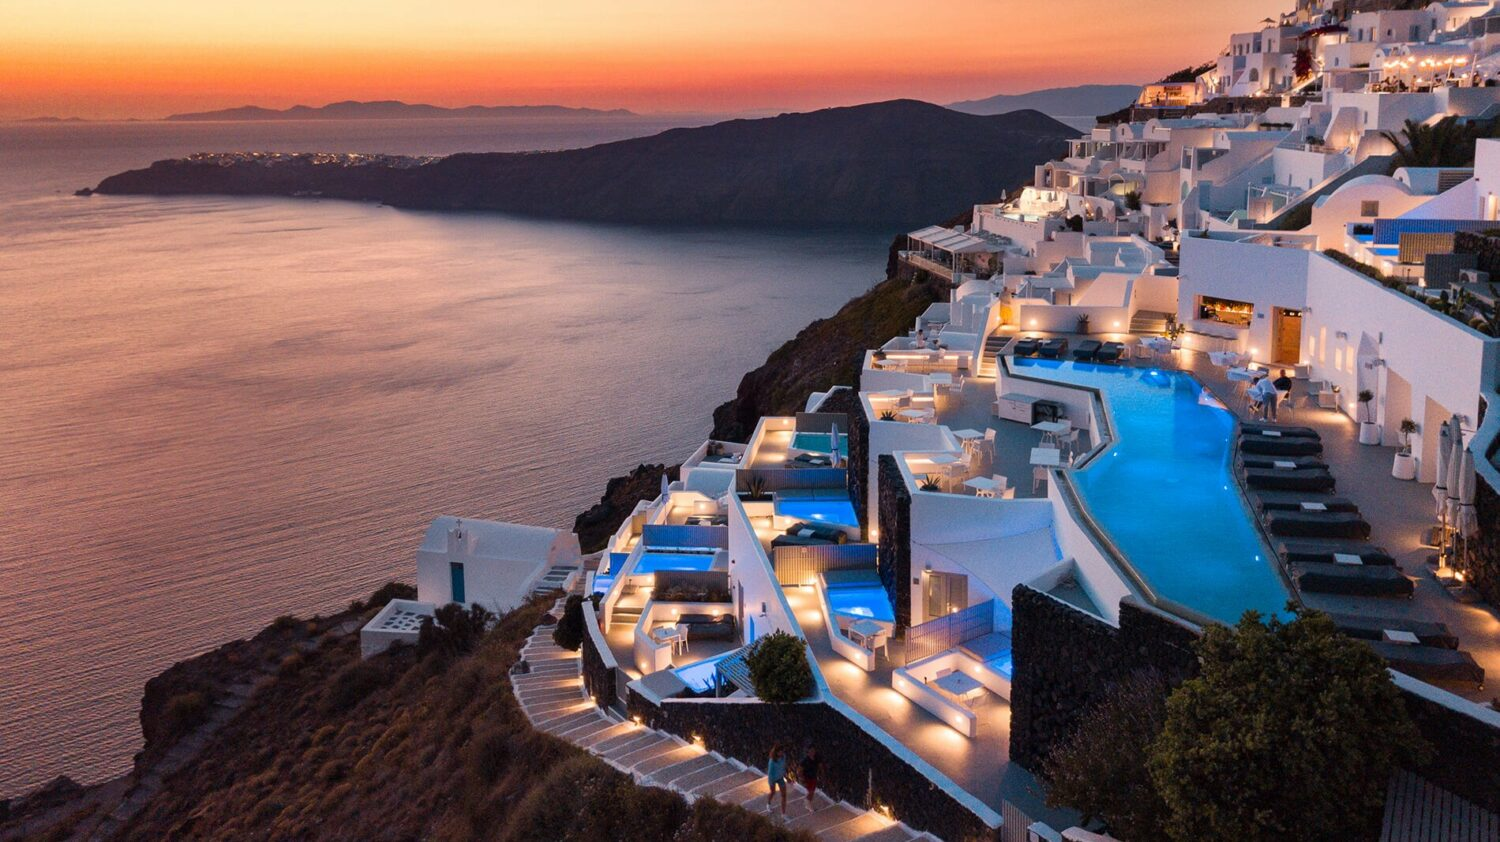 grace hotel, auberge resorts collection greece-sunset